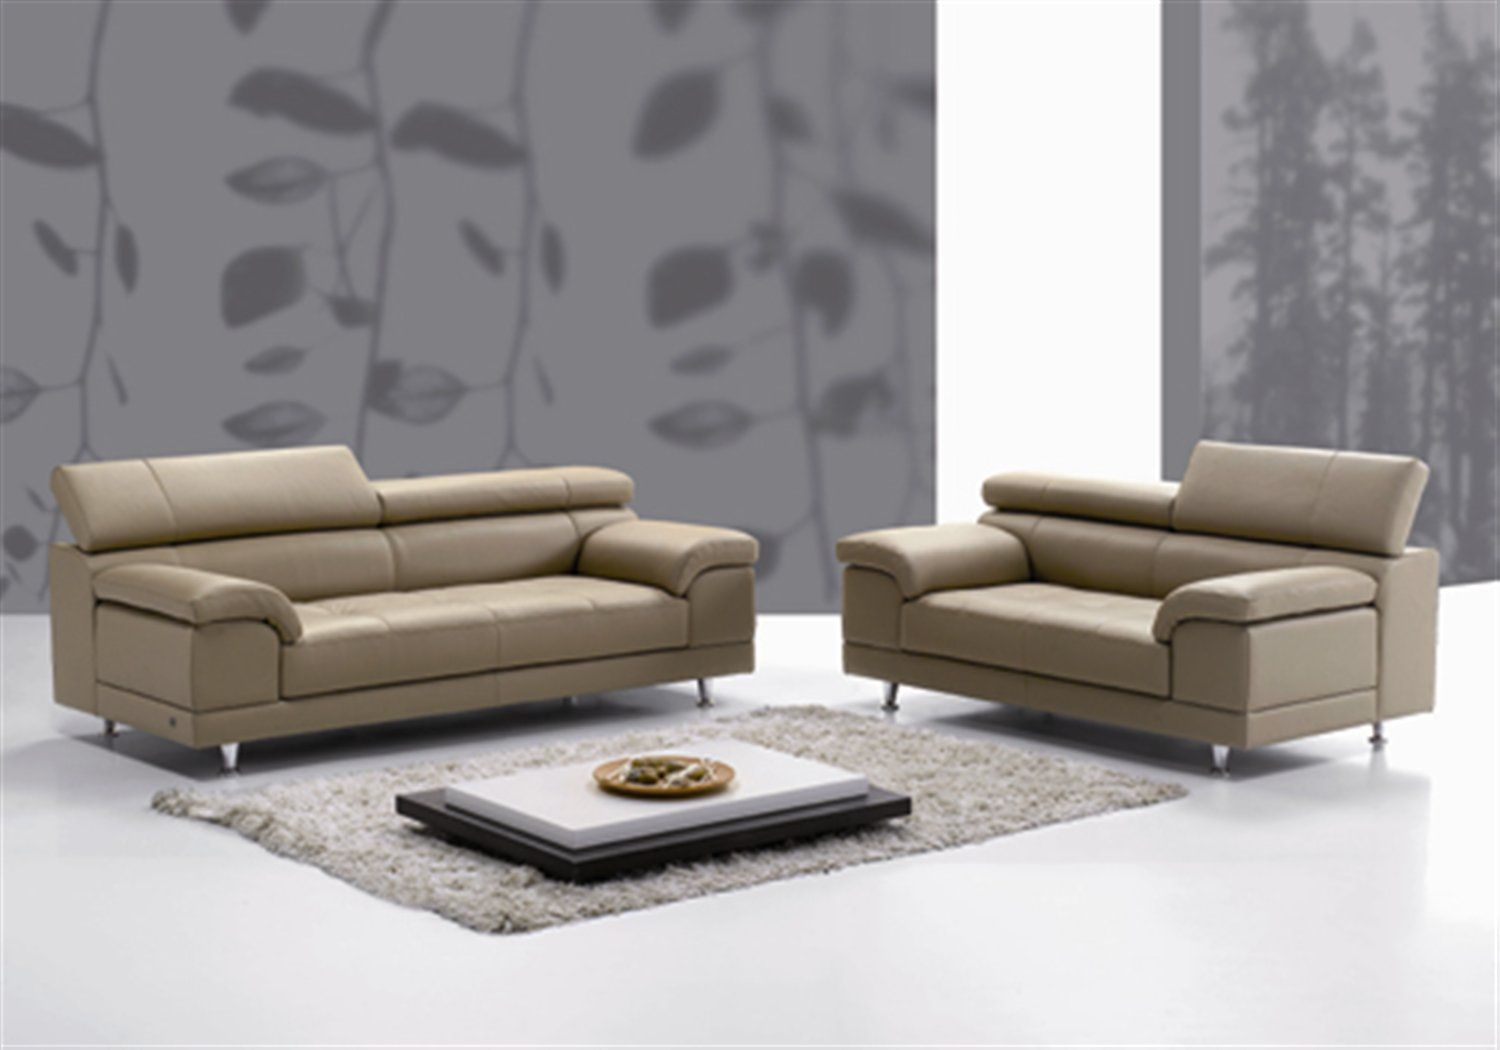 Leather Couch Ideas Stunning Piquattro Leather Italian Sofas Idea Ground